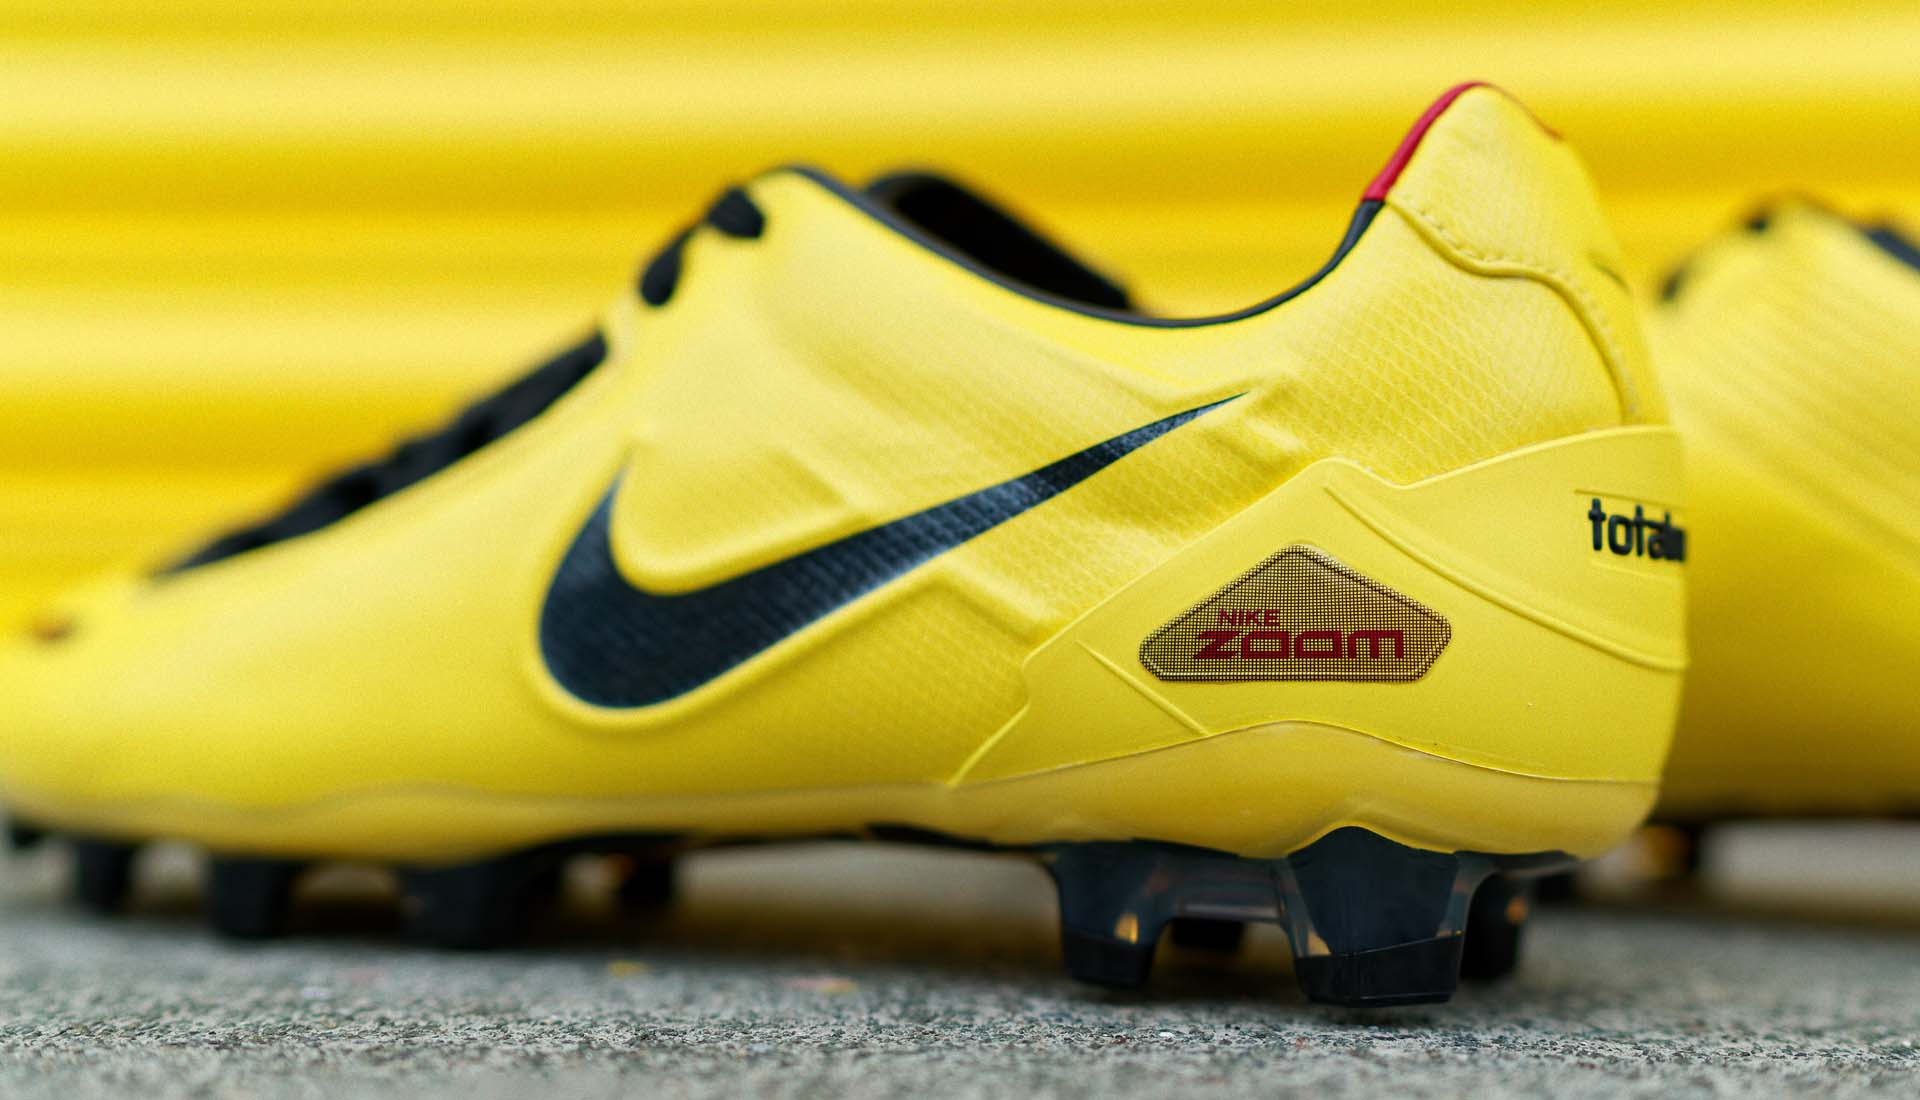 8a04c45dcc2a Nike Re-launch The T90 Laser I Football Boots - SoccerBible